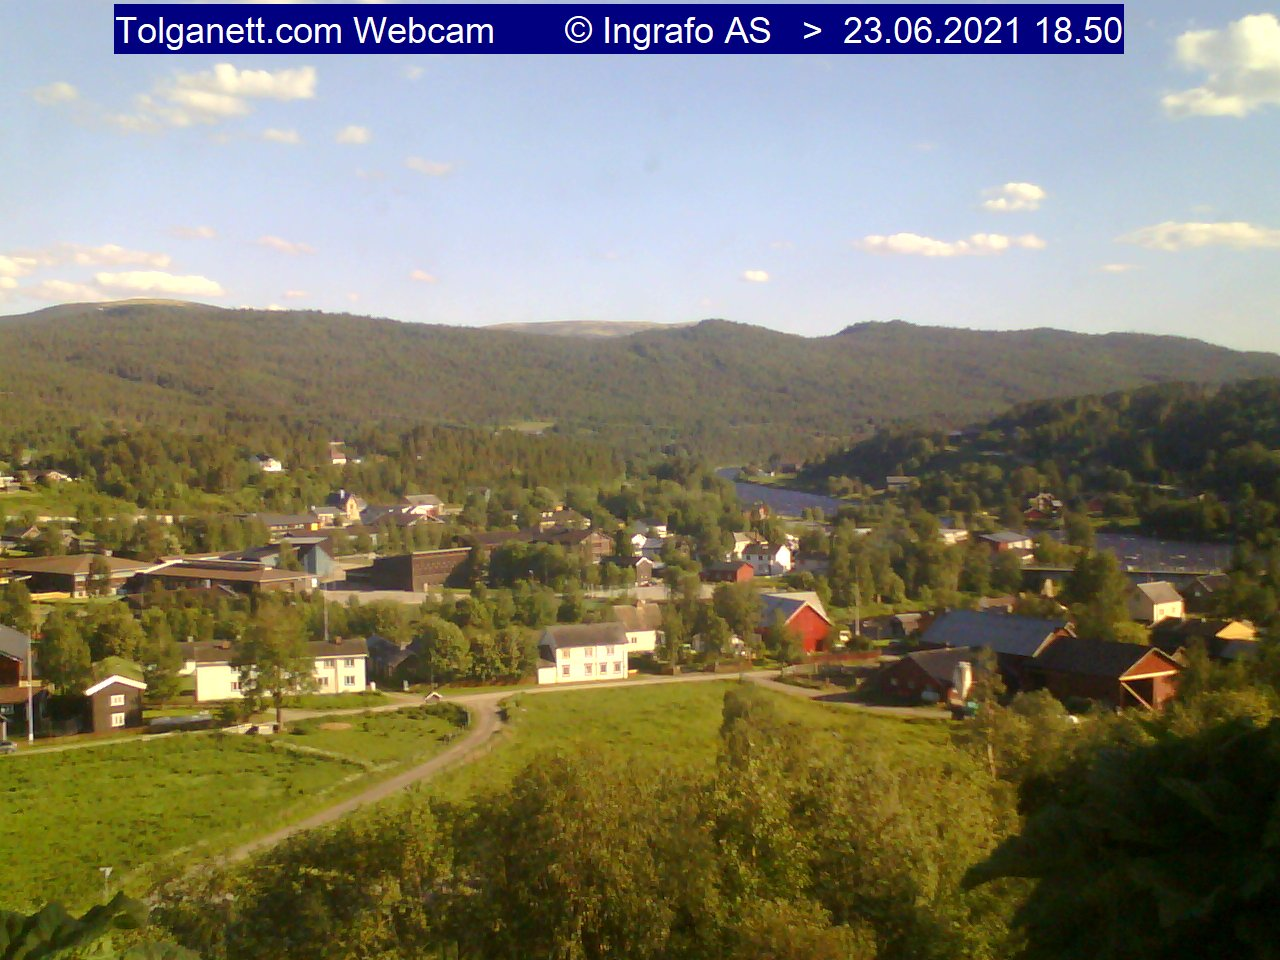 Webcam: Village Center of Tolga, Norvegia